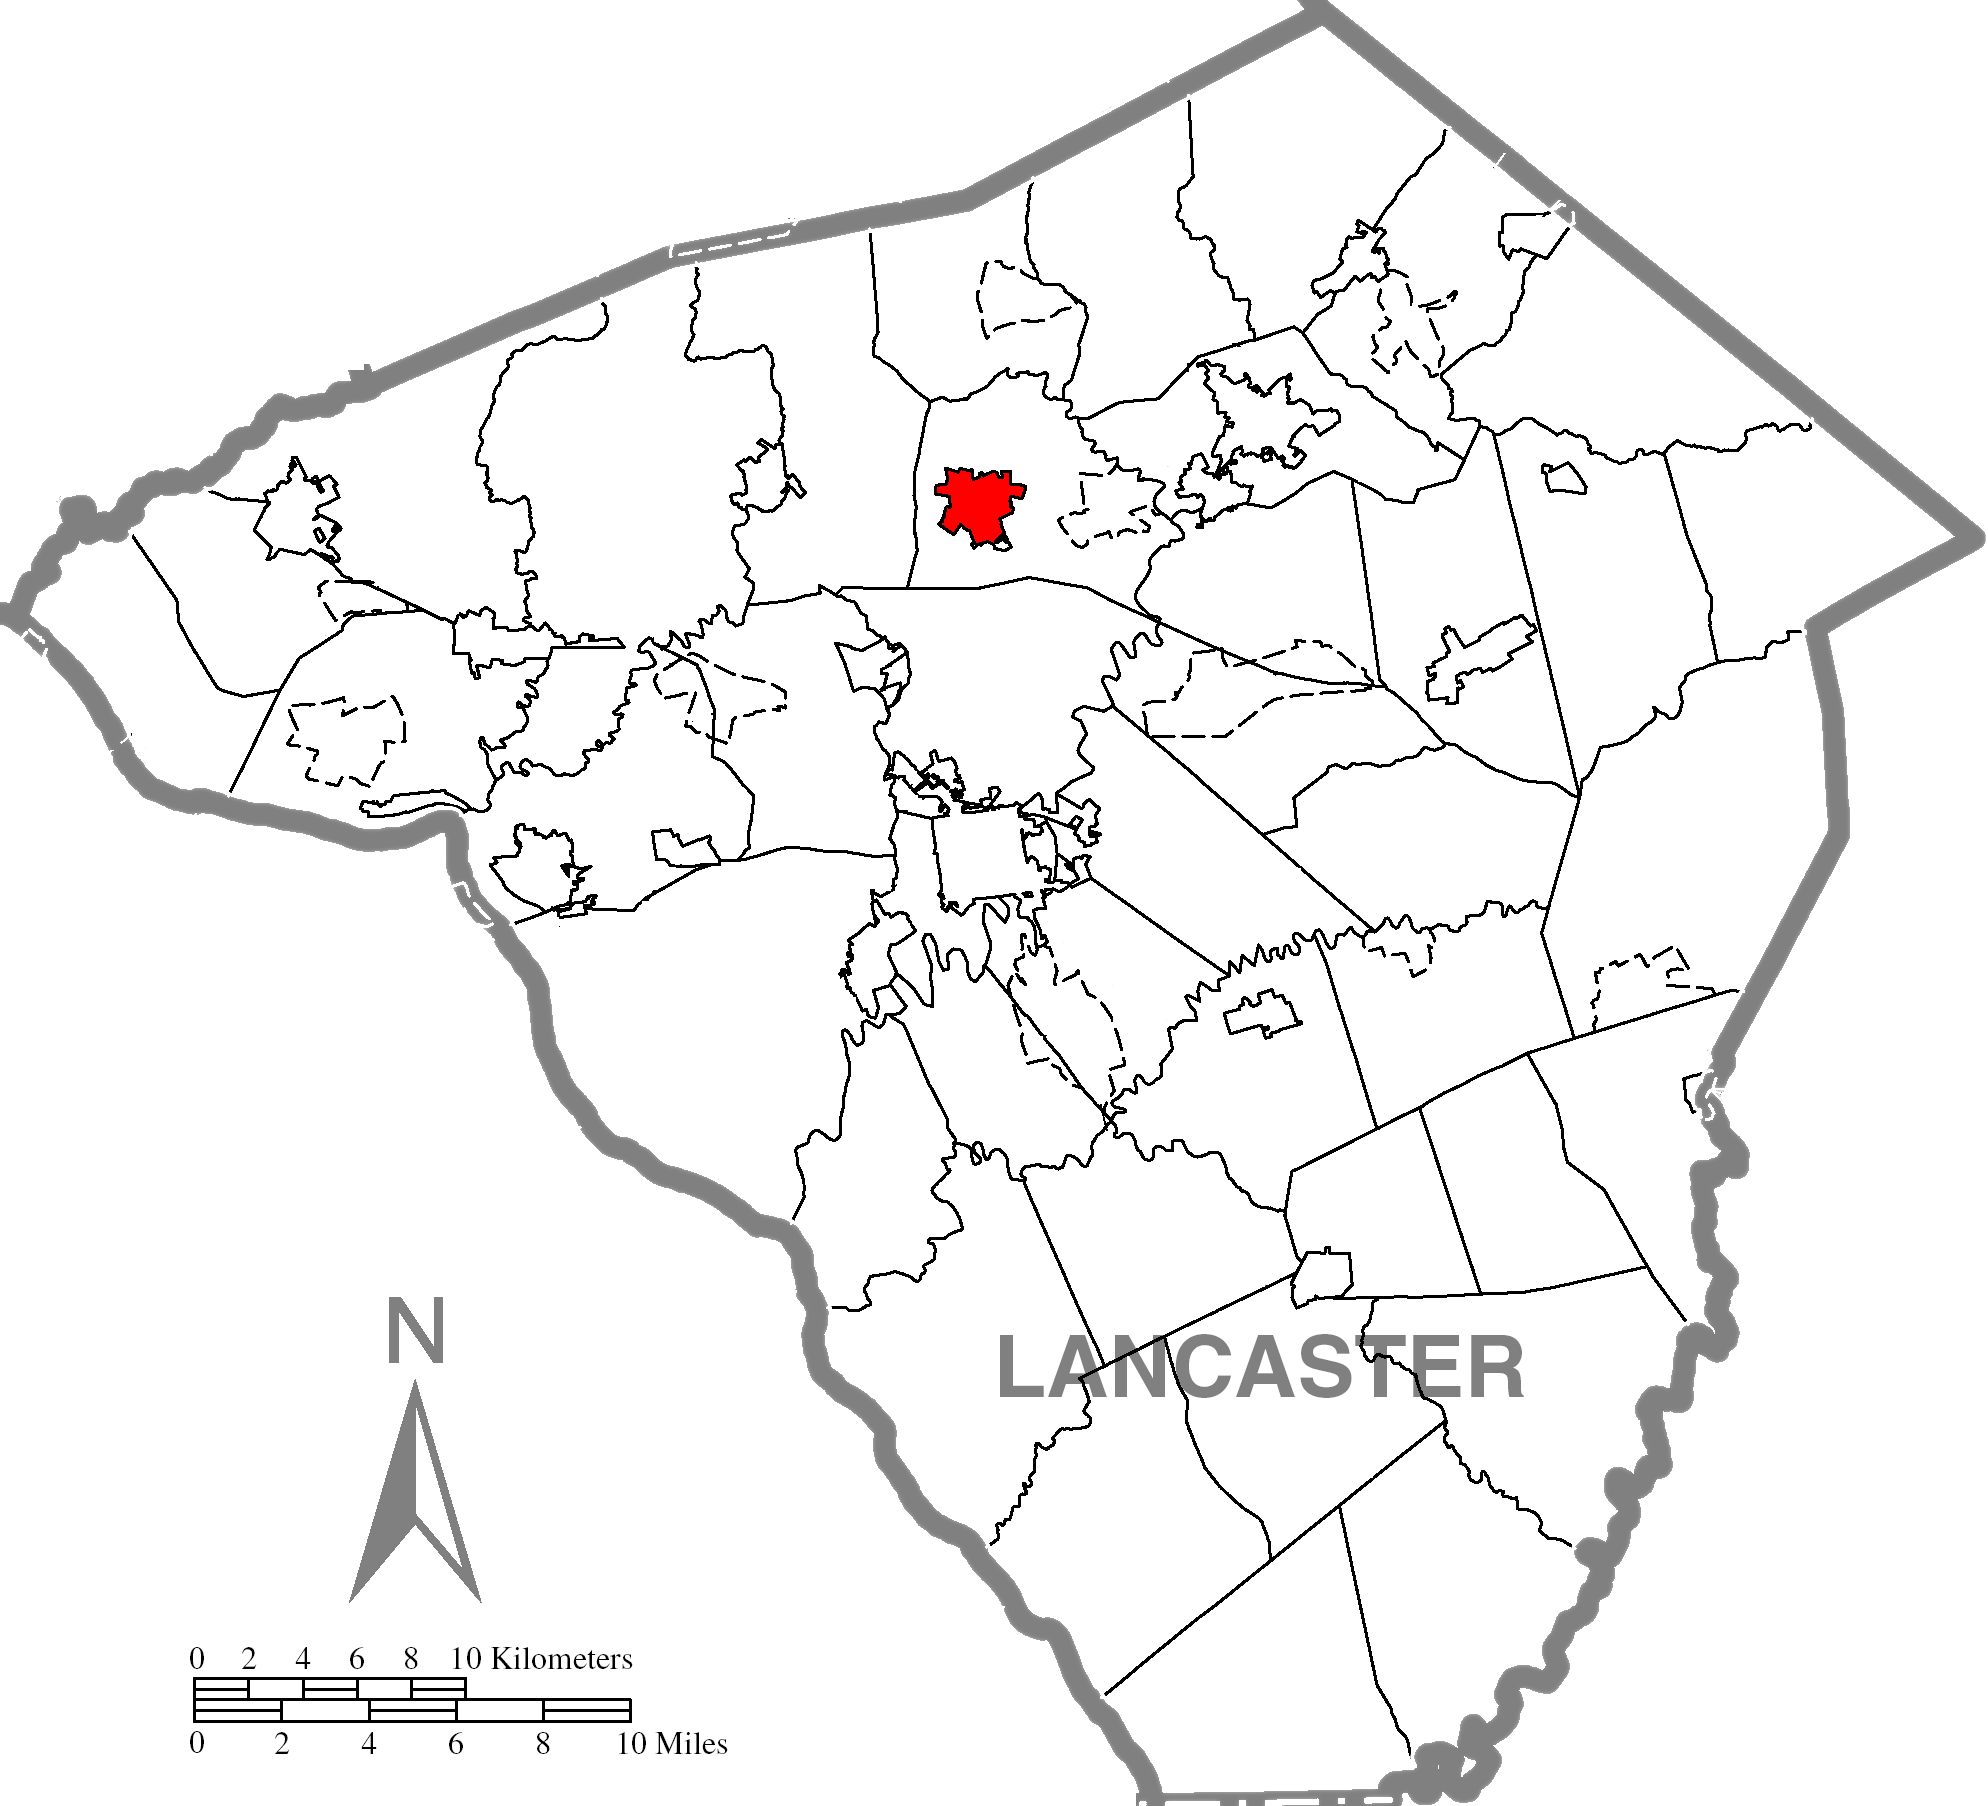 Lititzc Lancaster County Highlighted